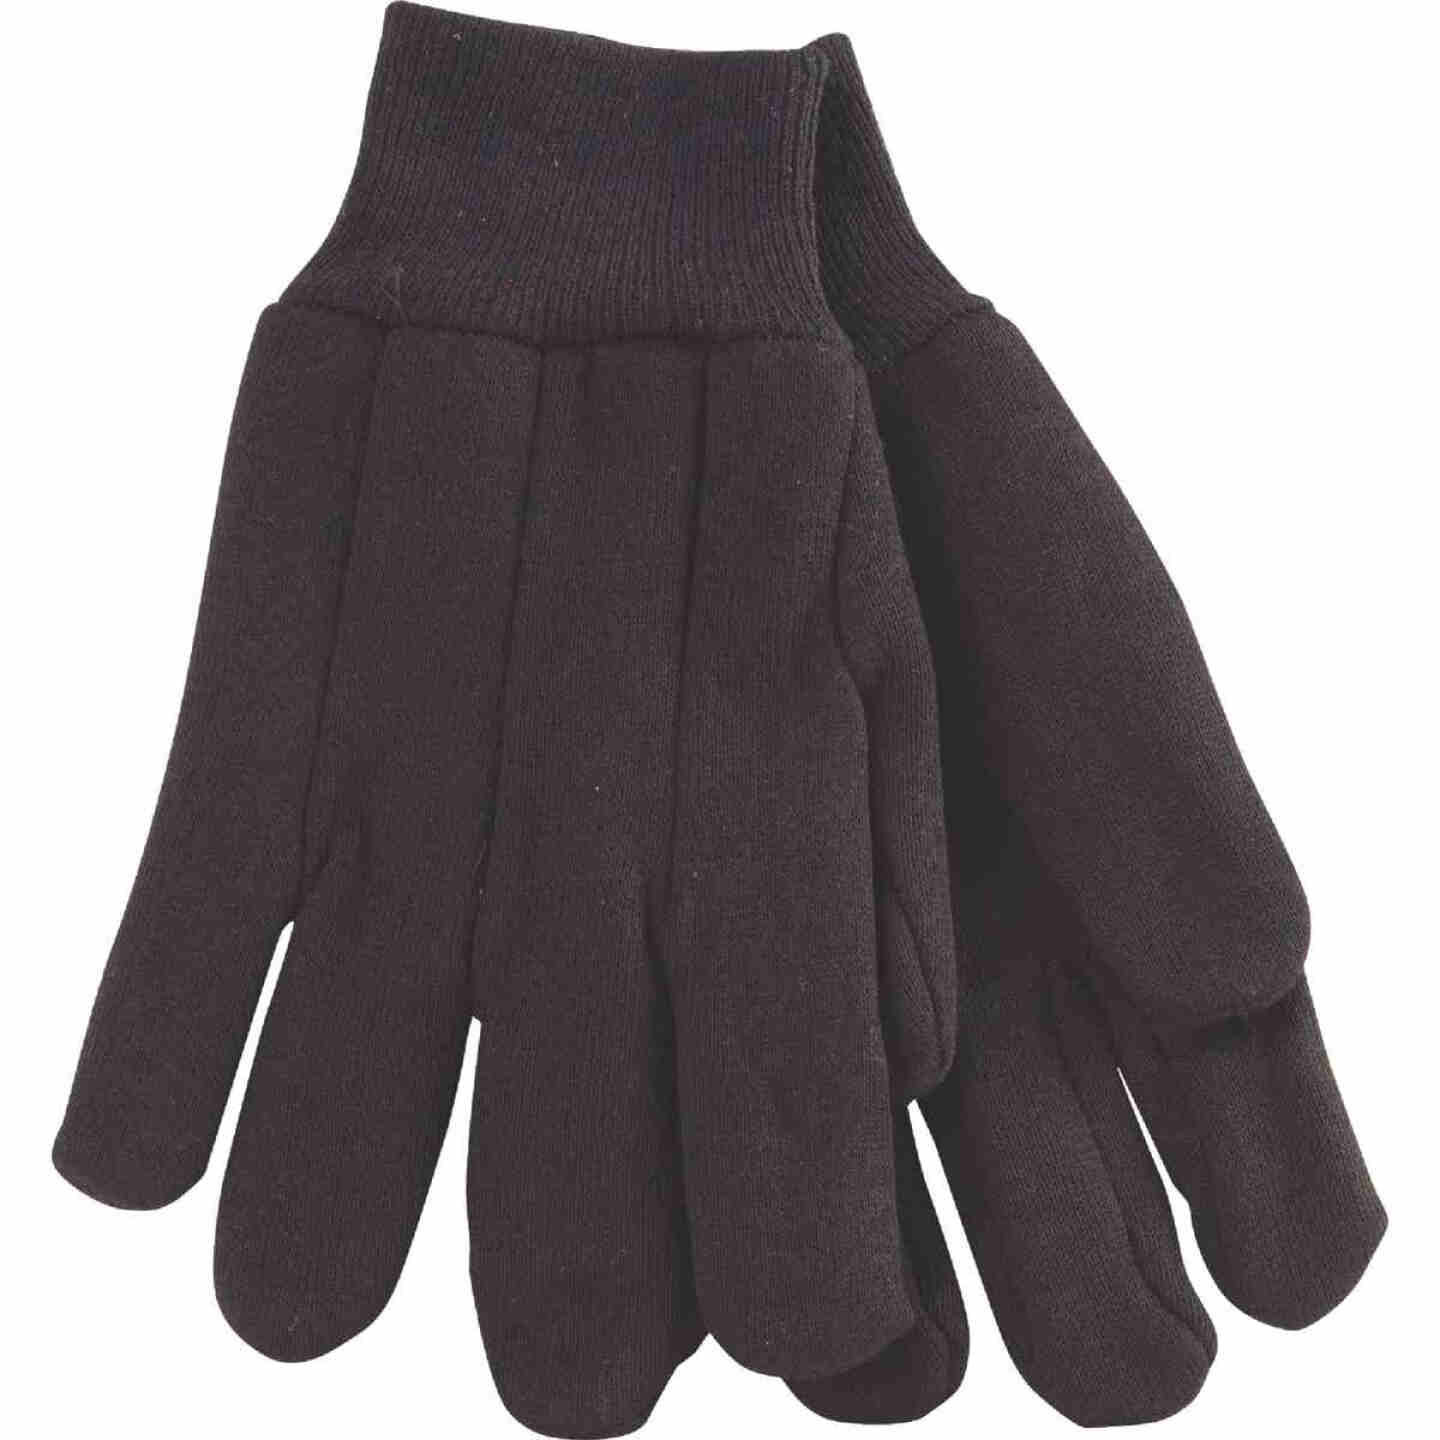 Do it Men's Large Lined Jersey Work Glove with Knit Wrist Image 1